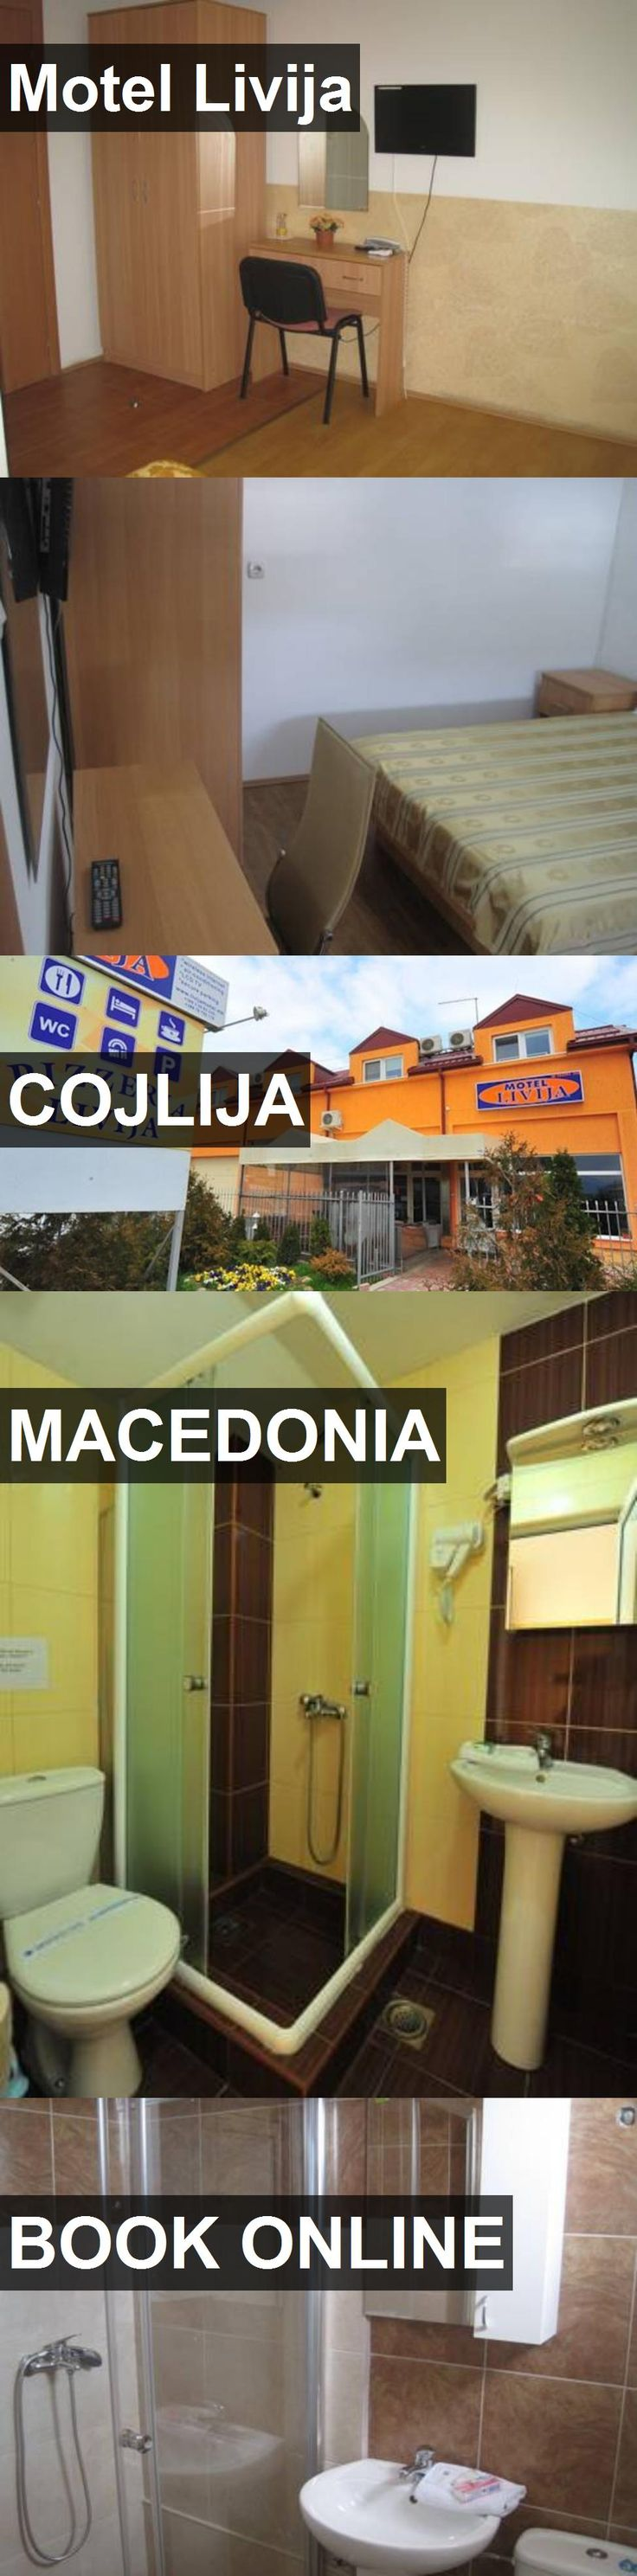 Hotel Motel Livija in Cojlija, Macedonia. For more information, photos, reviews and best prices please follow the link. #Macedonia #Cojlija #travel #vacation #hotel